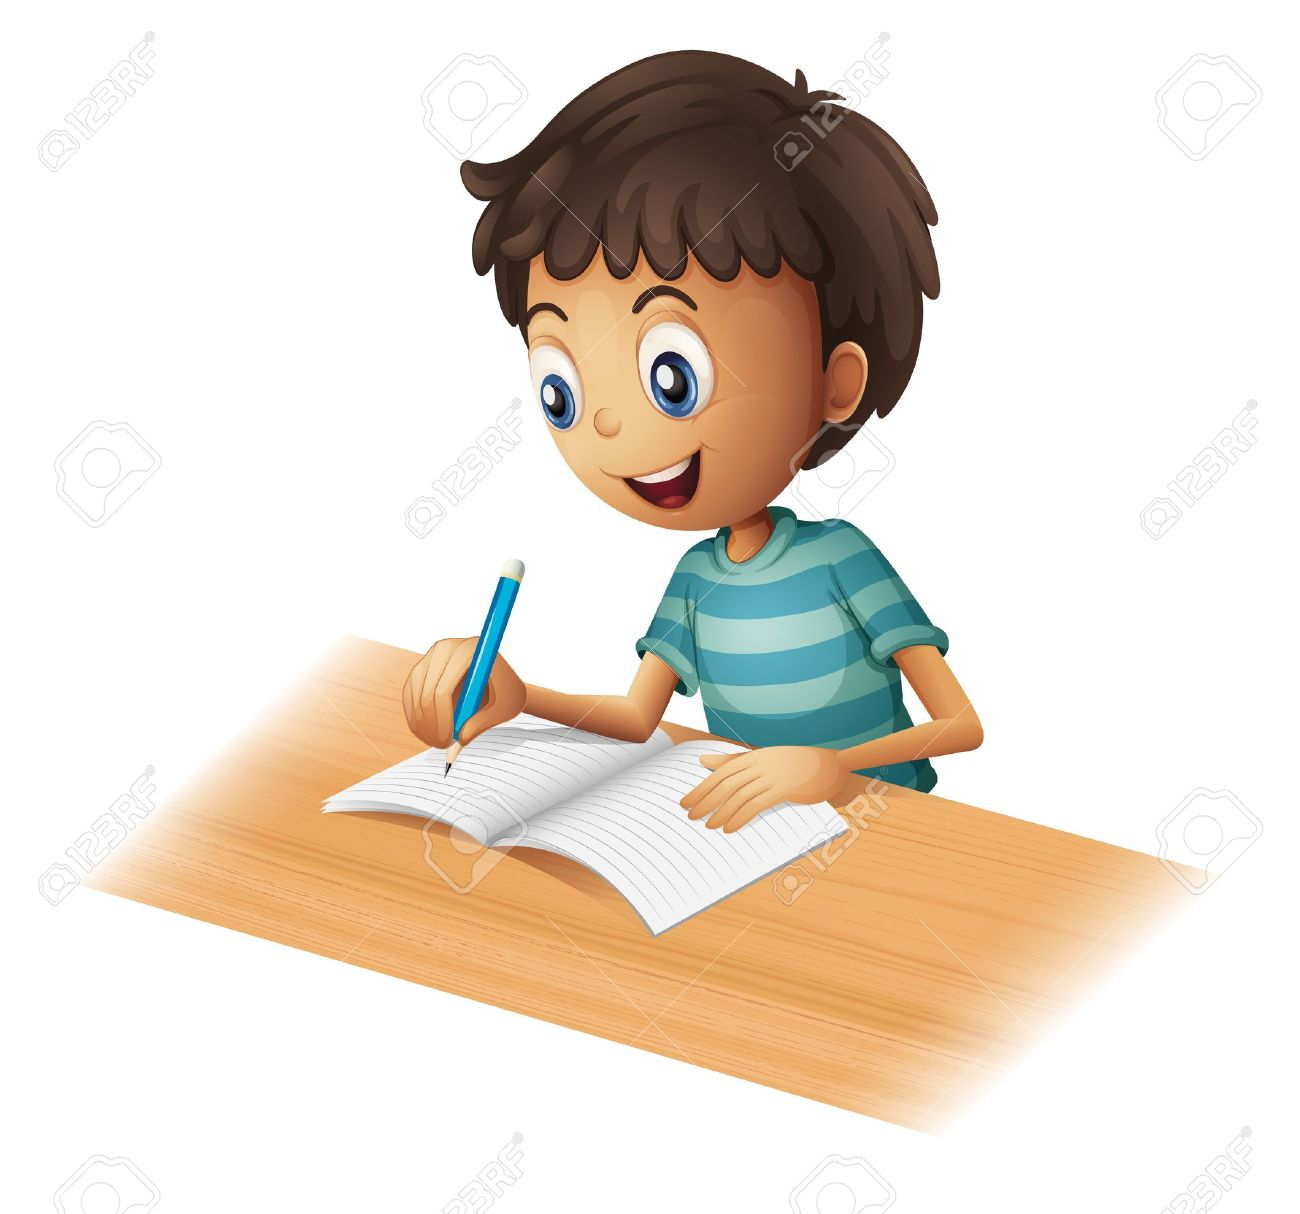 Illustration of a boy writing on a white background - 17358292